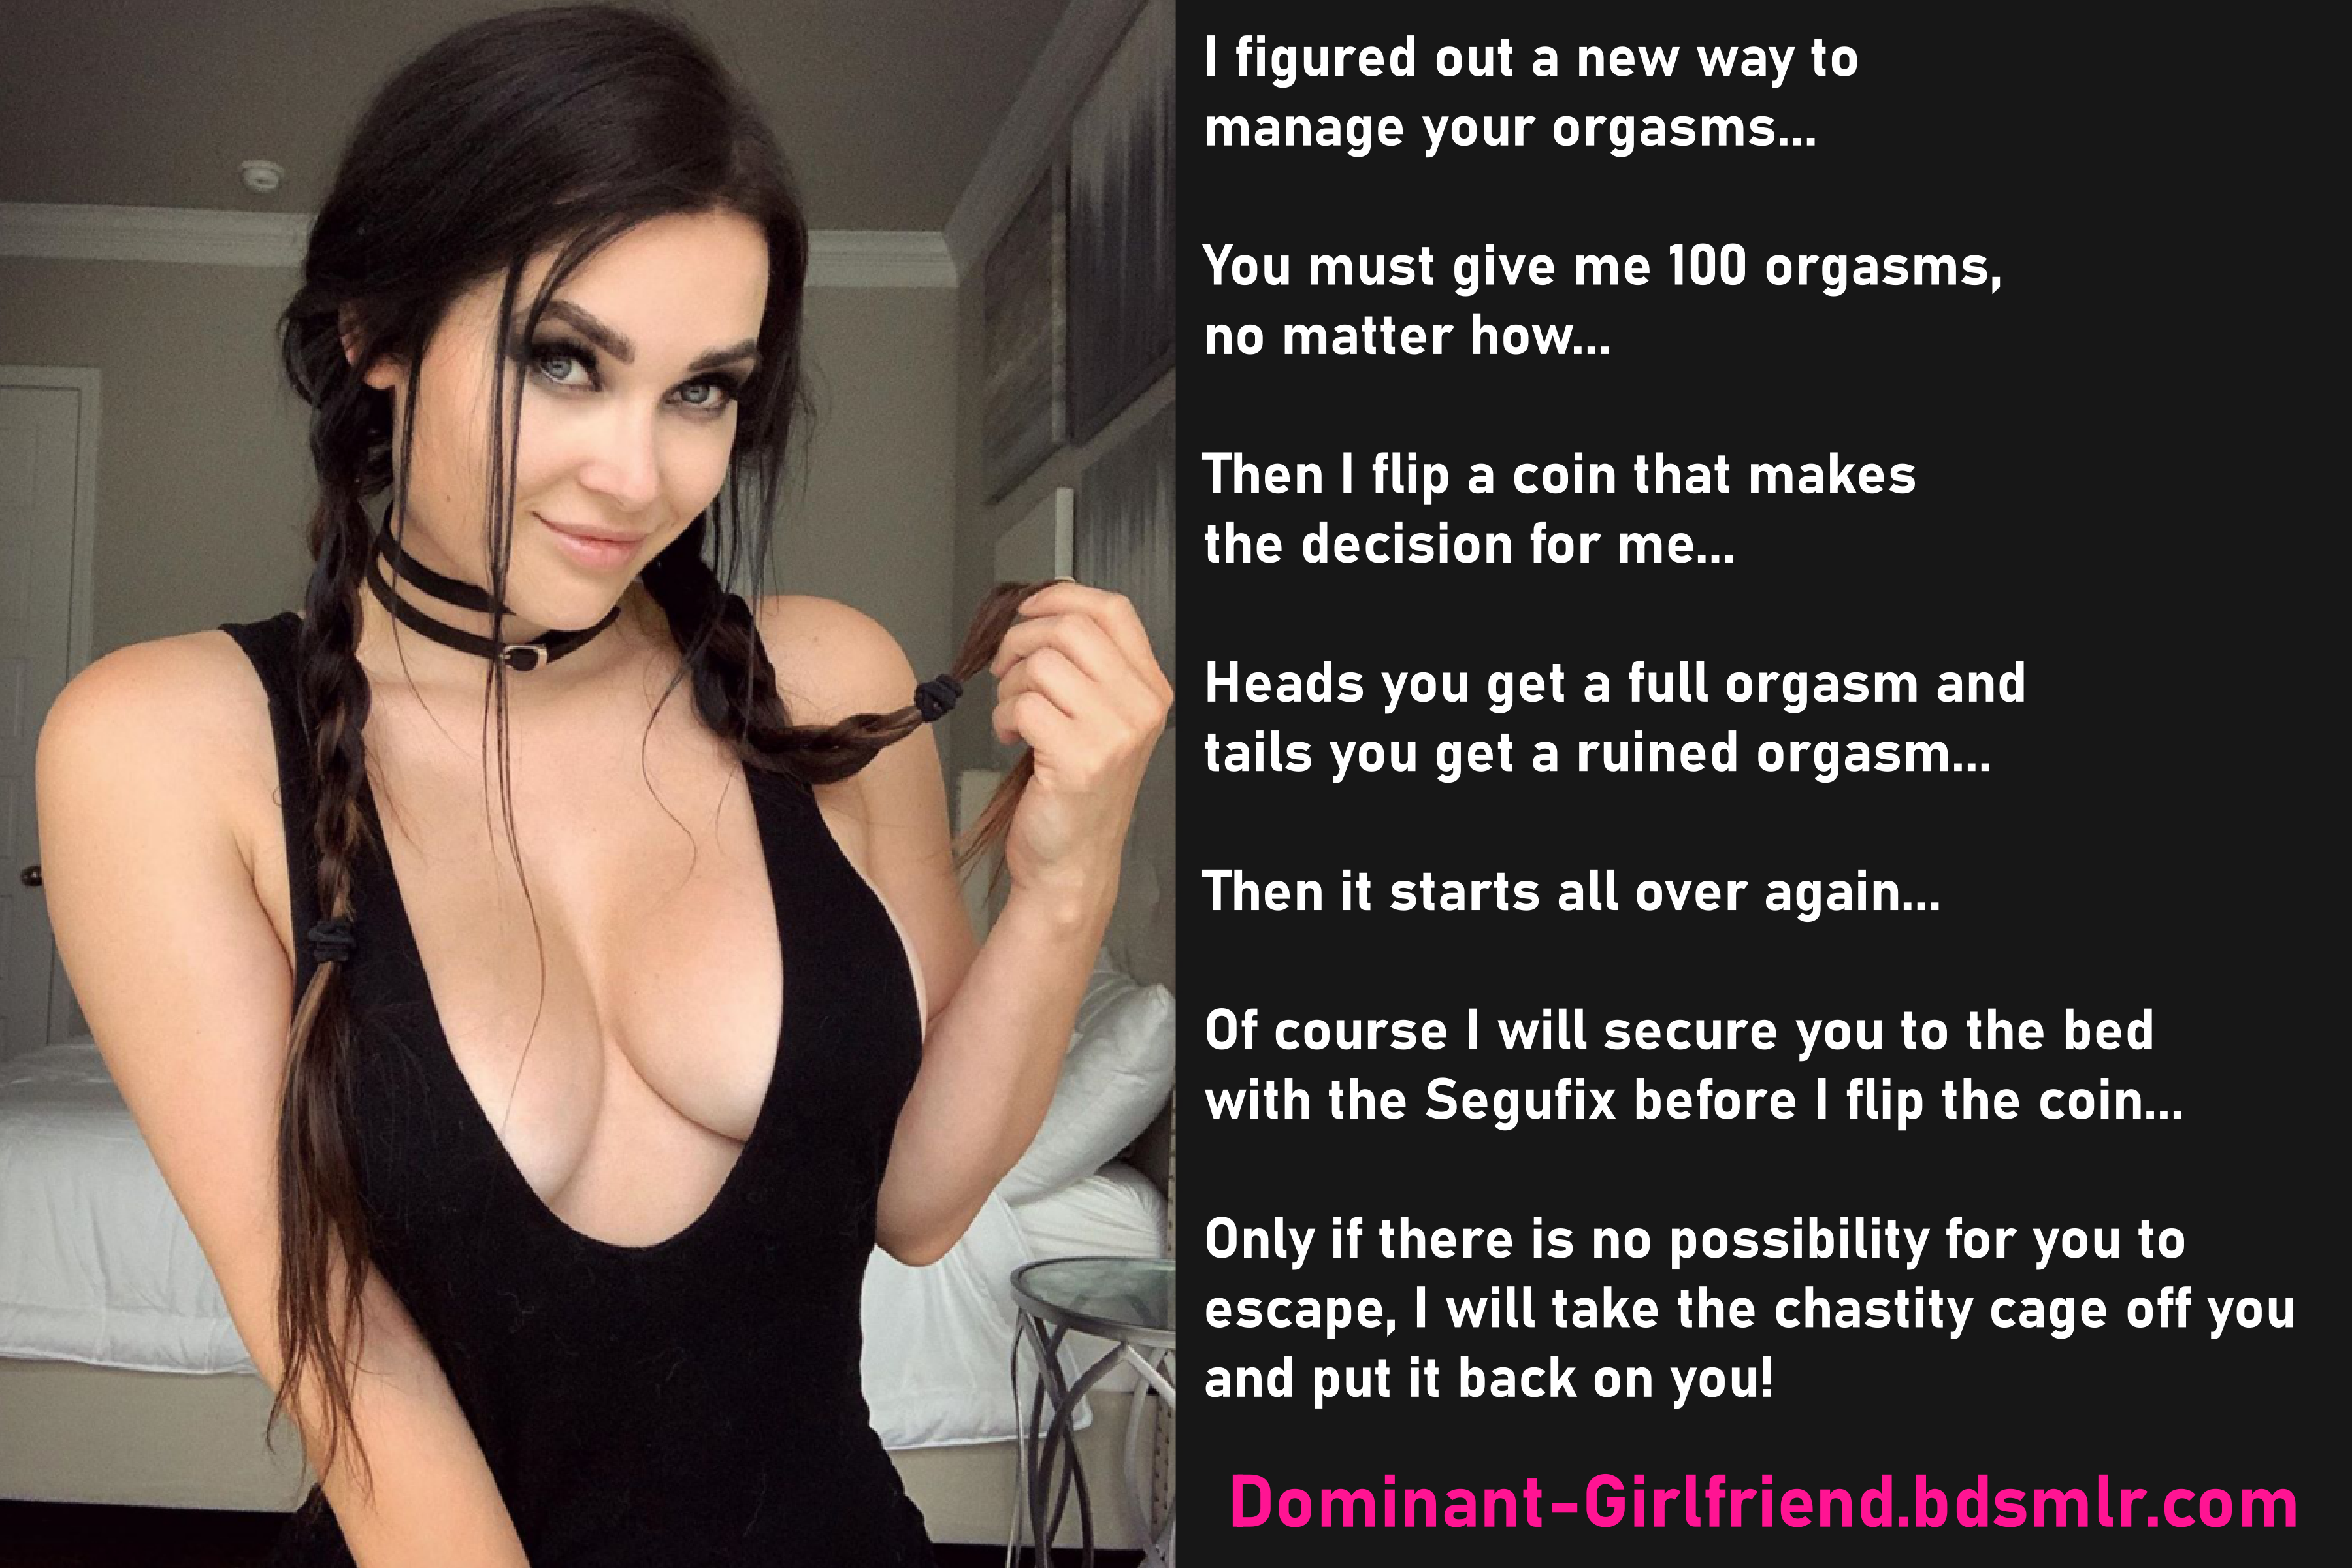 Relatable, i'm totally dominant with my girlfriend